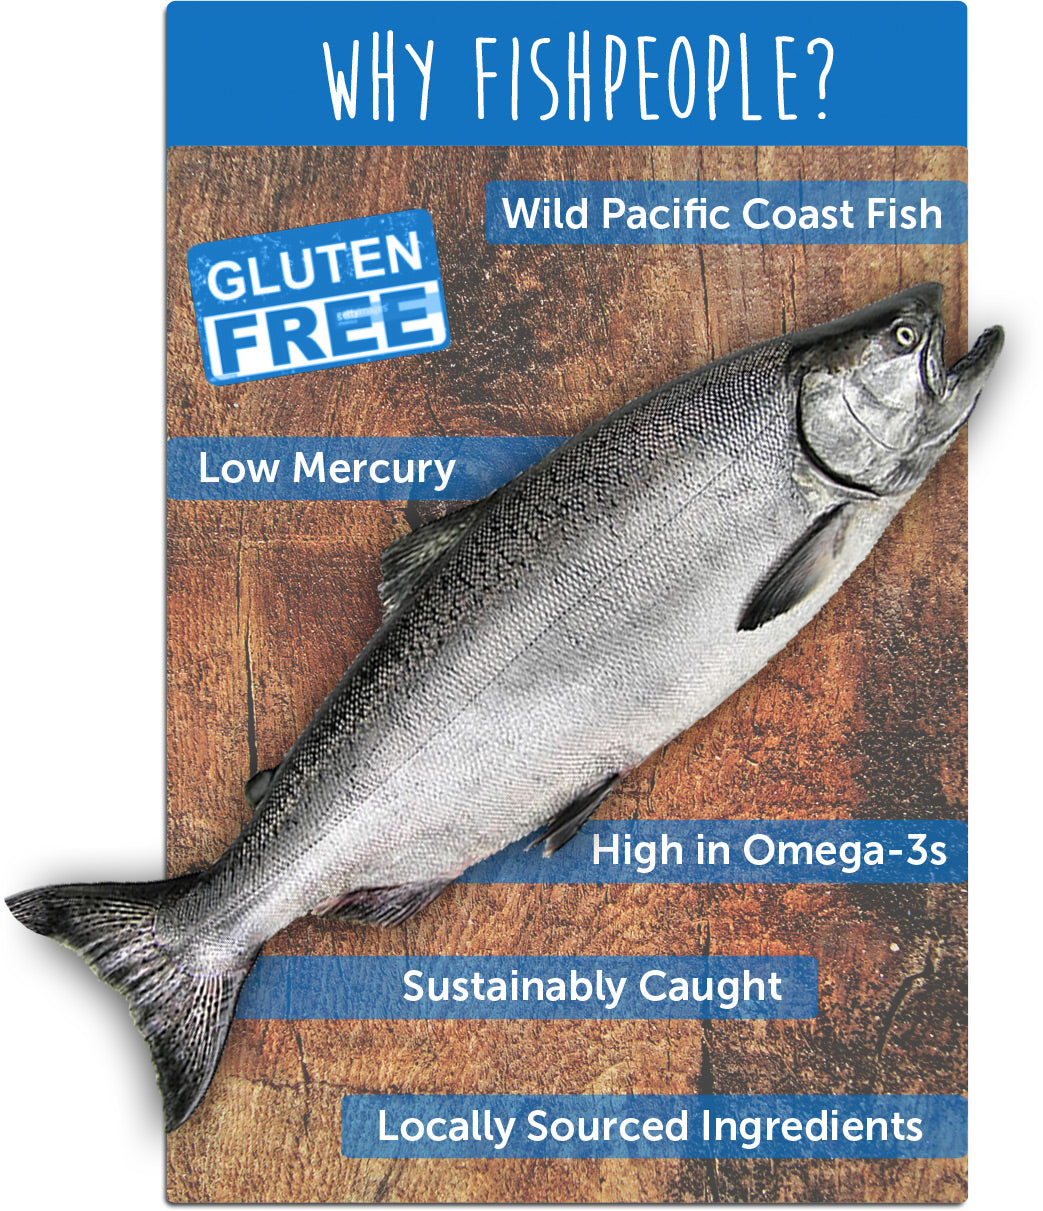 Gluten Free, Wild Pacific Coast Fish, Low Mercury, High in Omega-3s, Sustainably Caught, and Locally Sourced Ingredients